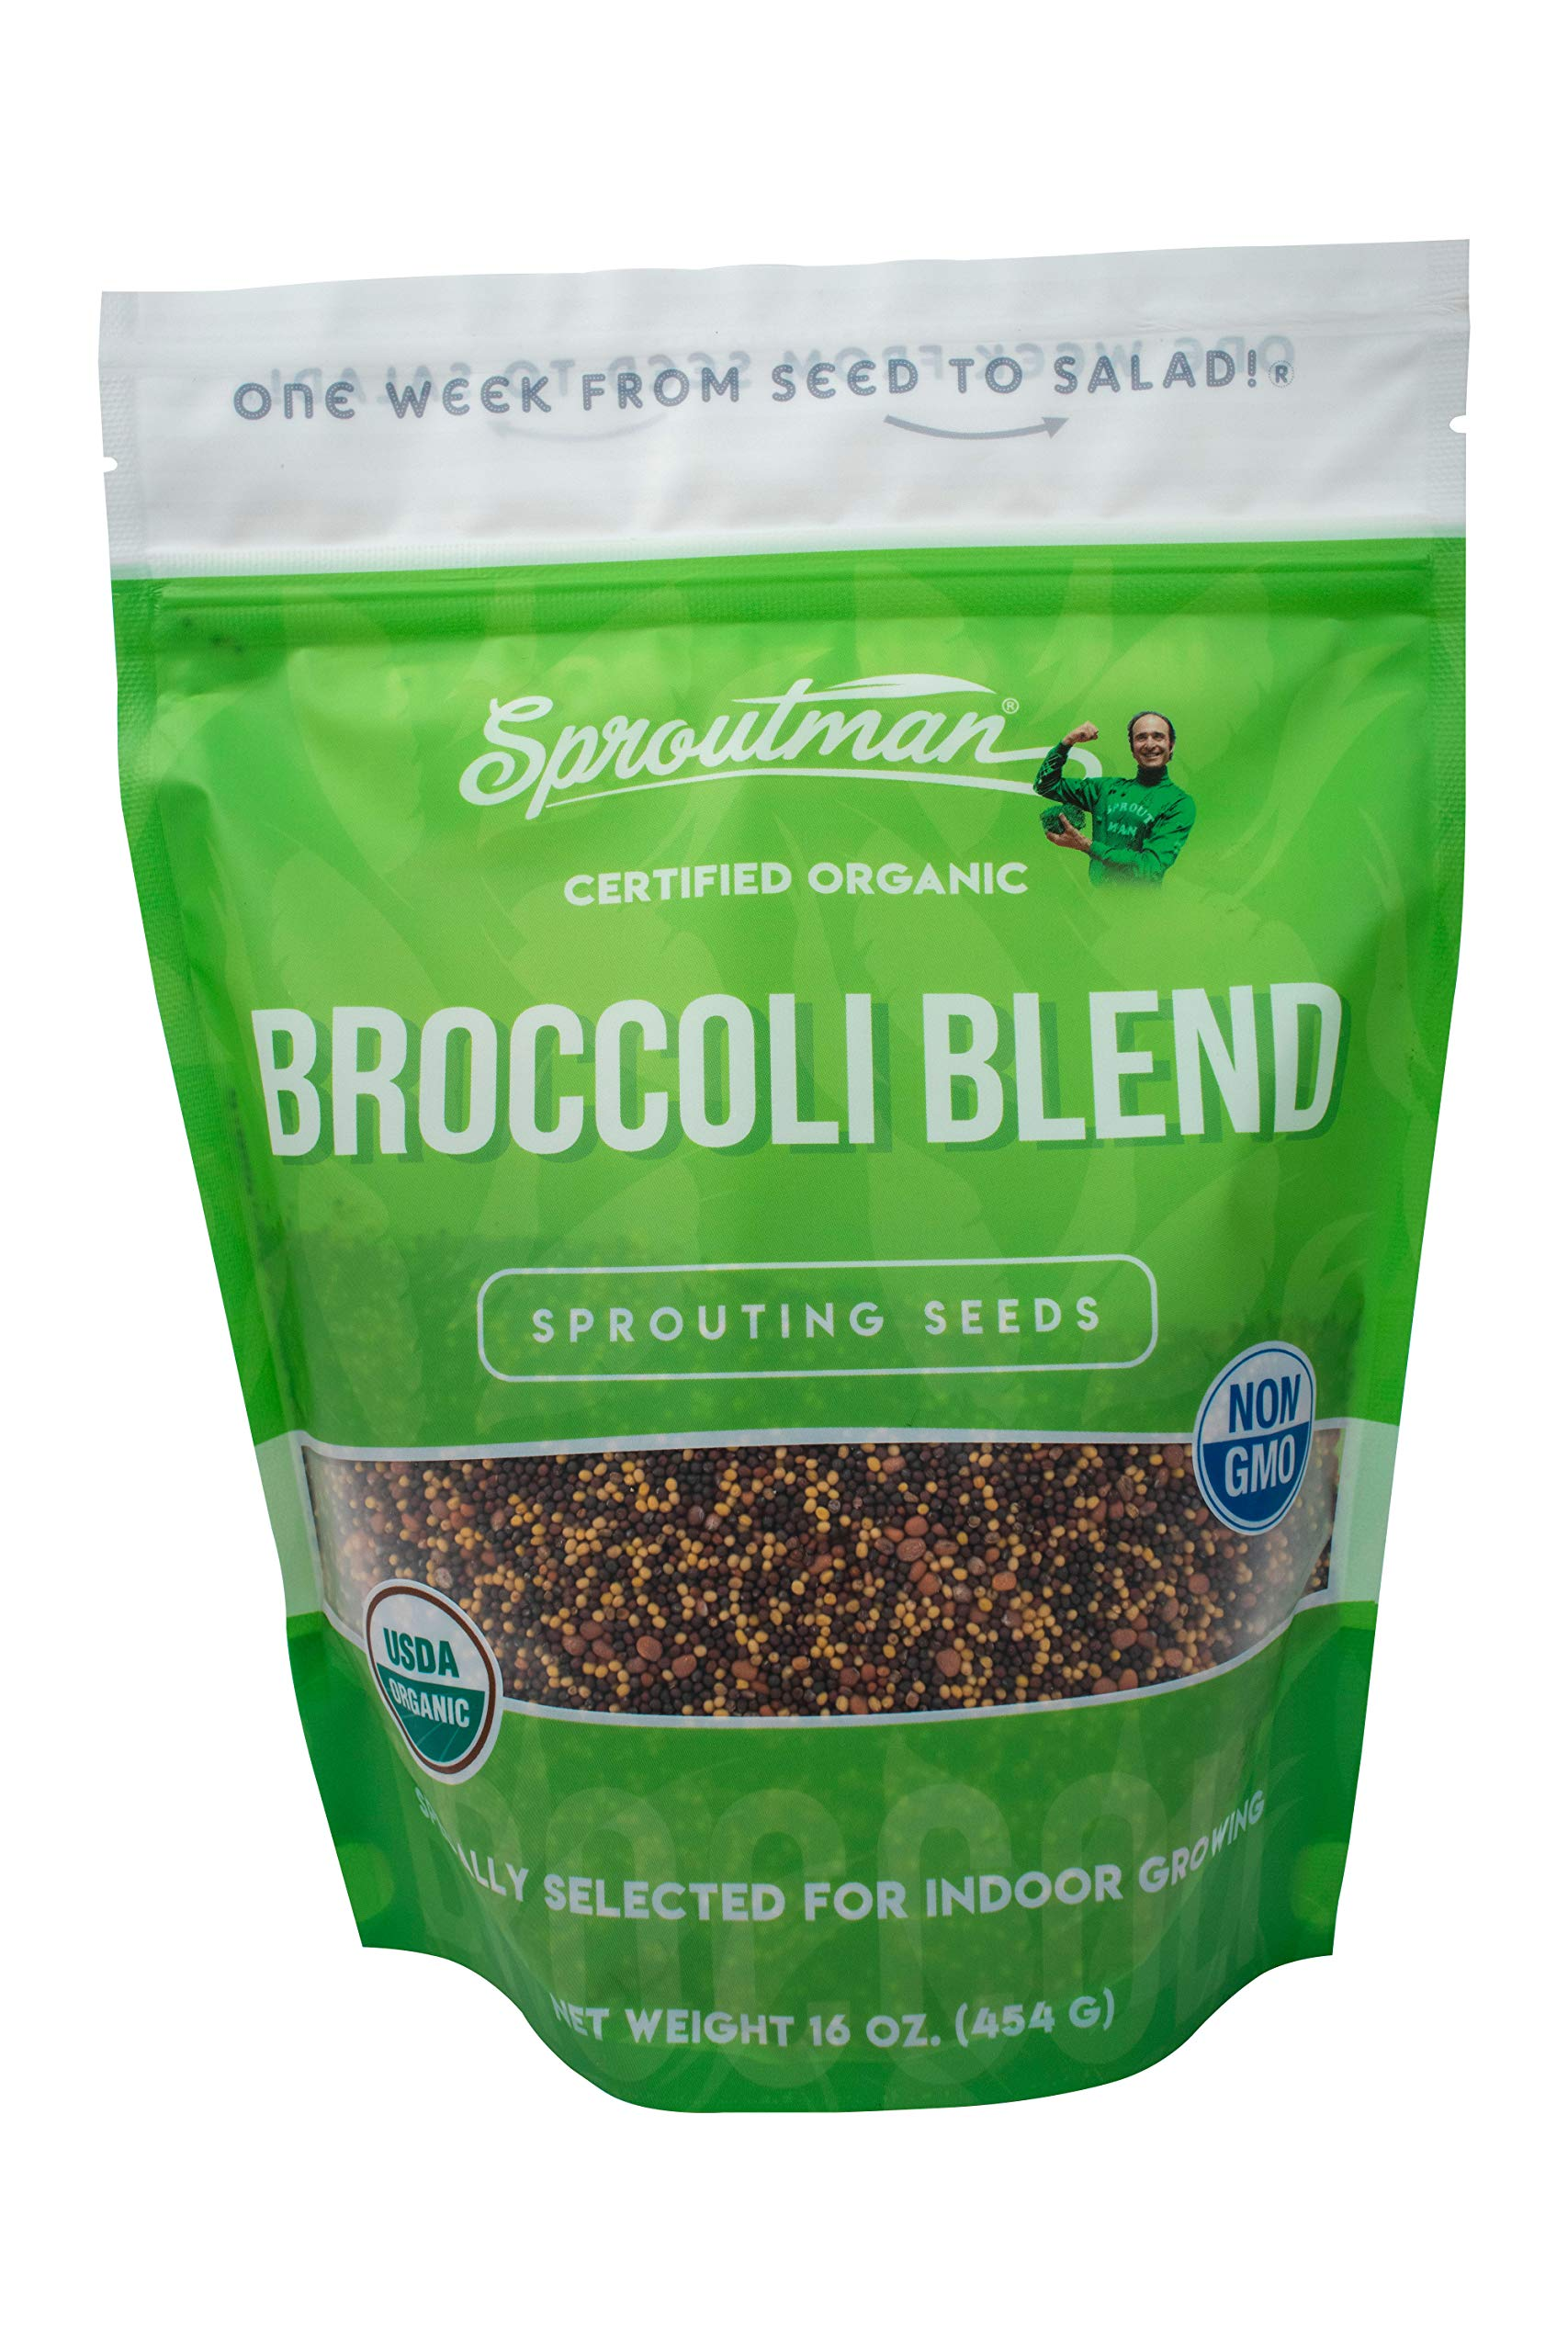 Sproutman Organic Broccoli Blend Sprouting Seed - Broccoli Blend Seeds for Sprouting, High Germination, Non-GMO, Certified Organic (16oz) by Sproutman